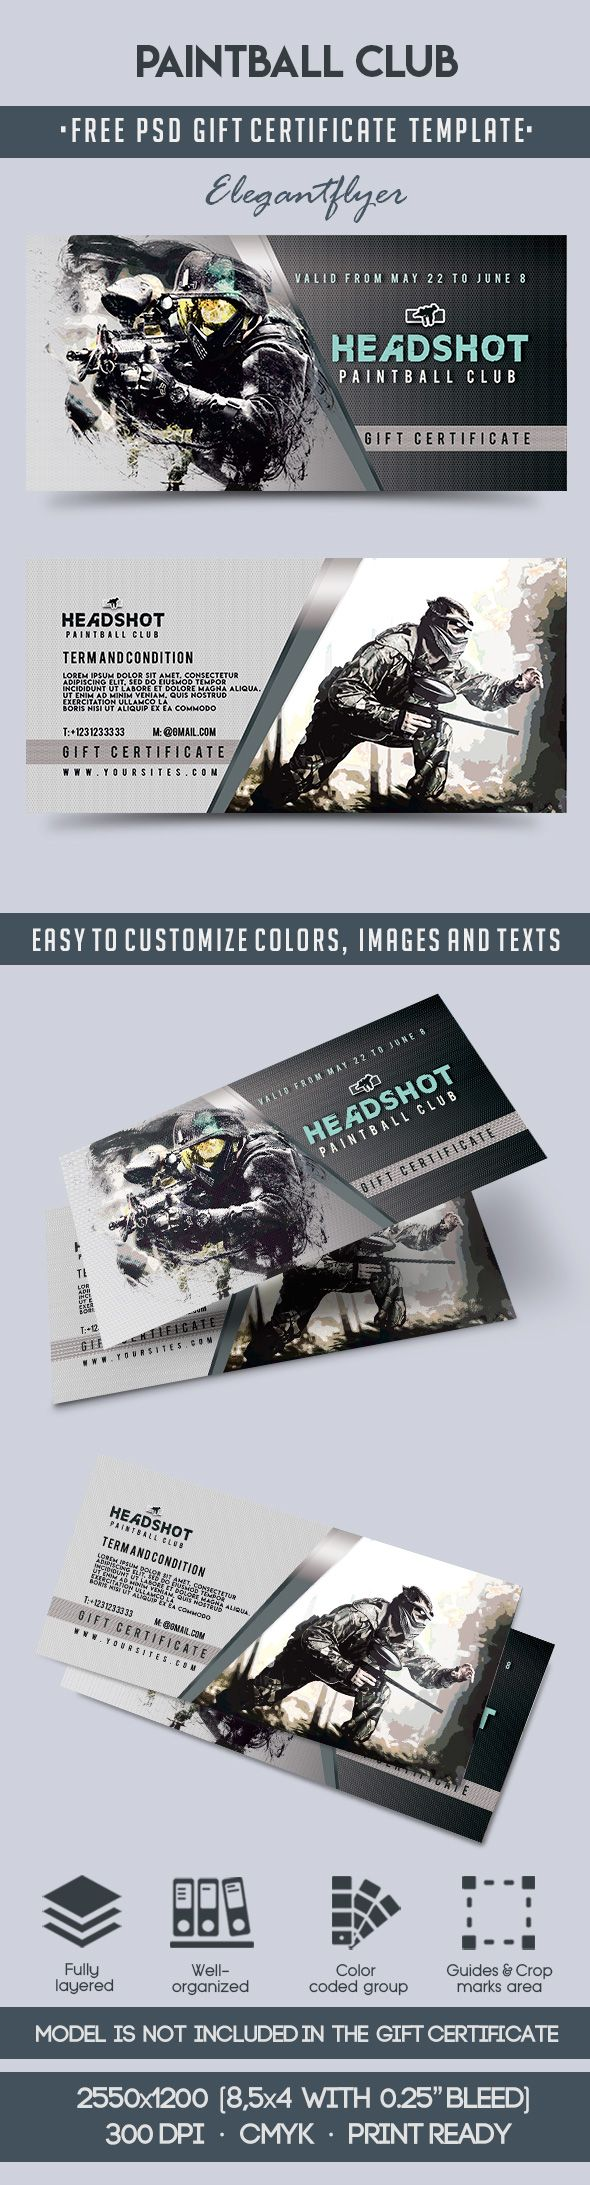 Paintball Club – Free Gift Certificate PSD Template